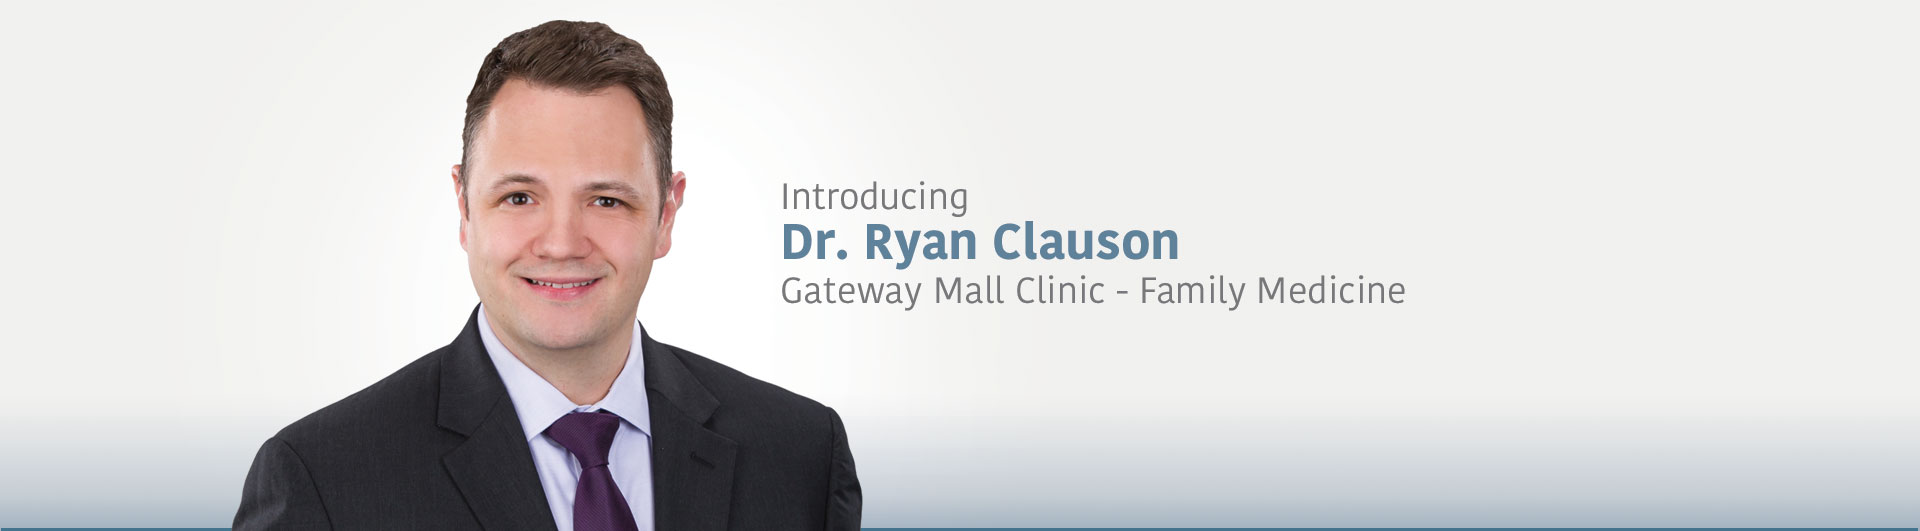 Dr. Ryan Clauson